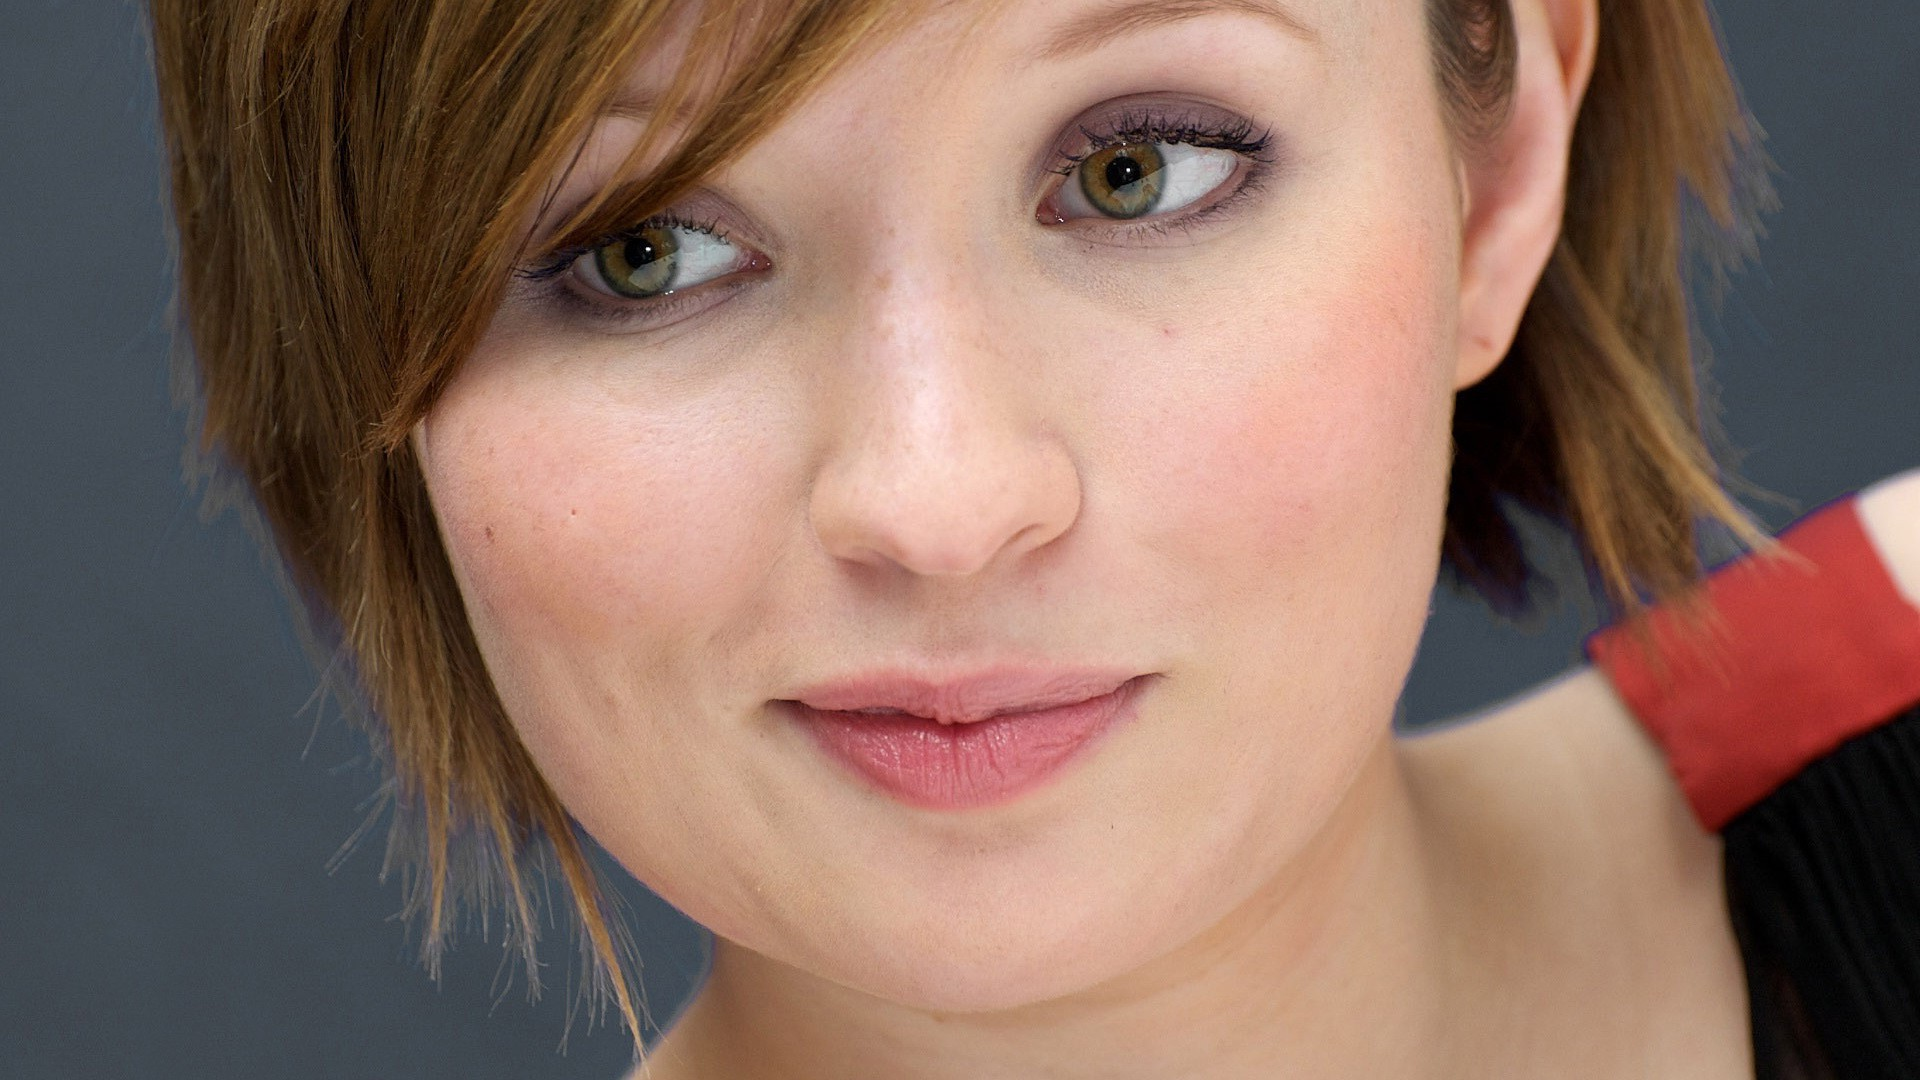 1920x1080 Fantasy Girl Wallpaper Emily Browning Wallpaper 1920x1080 49413